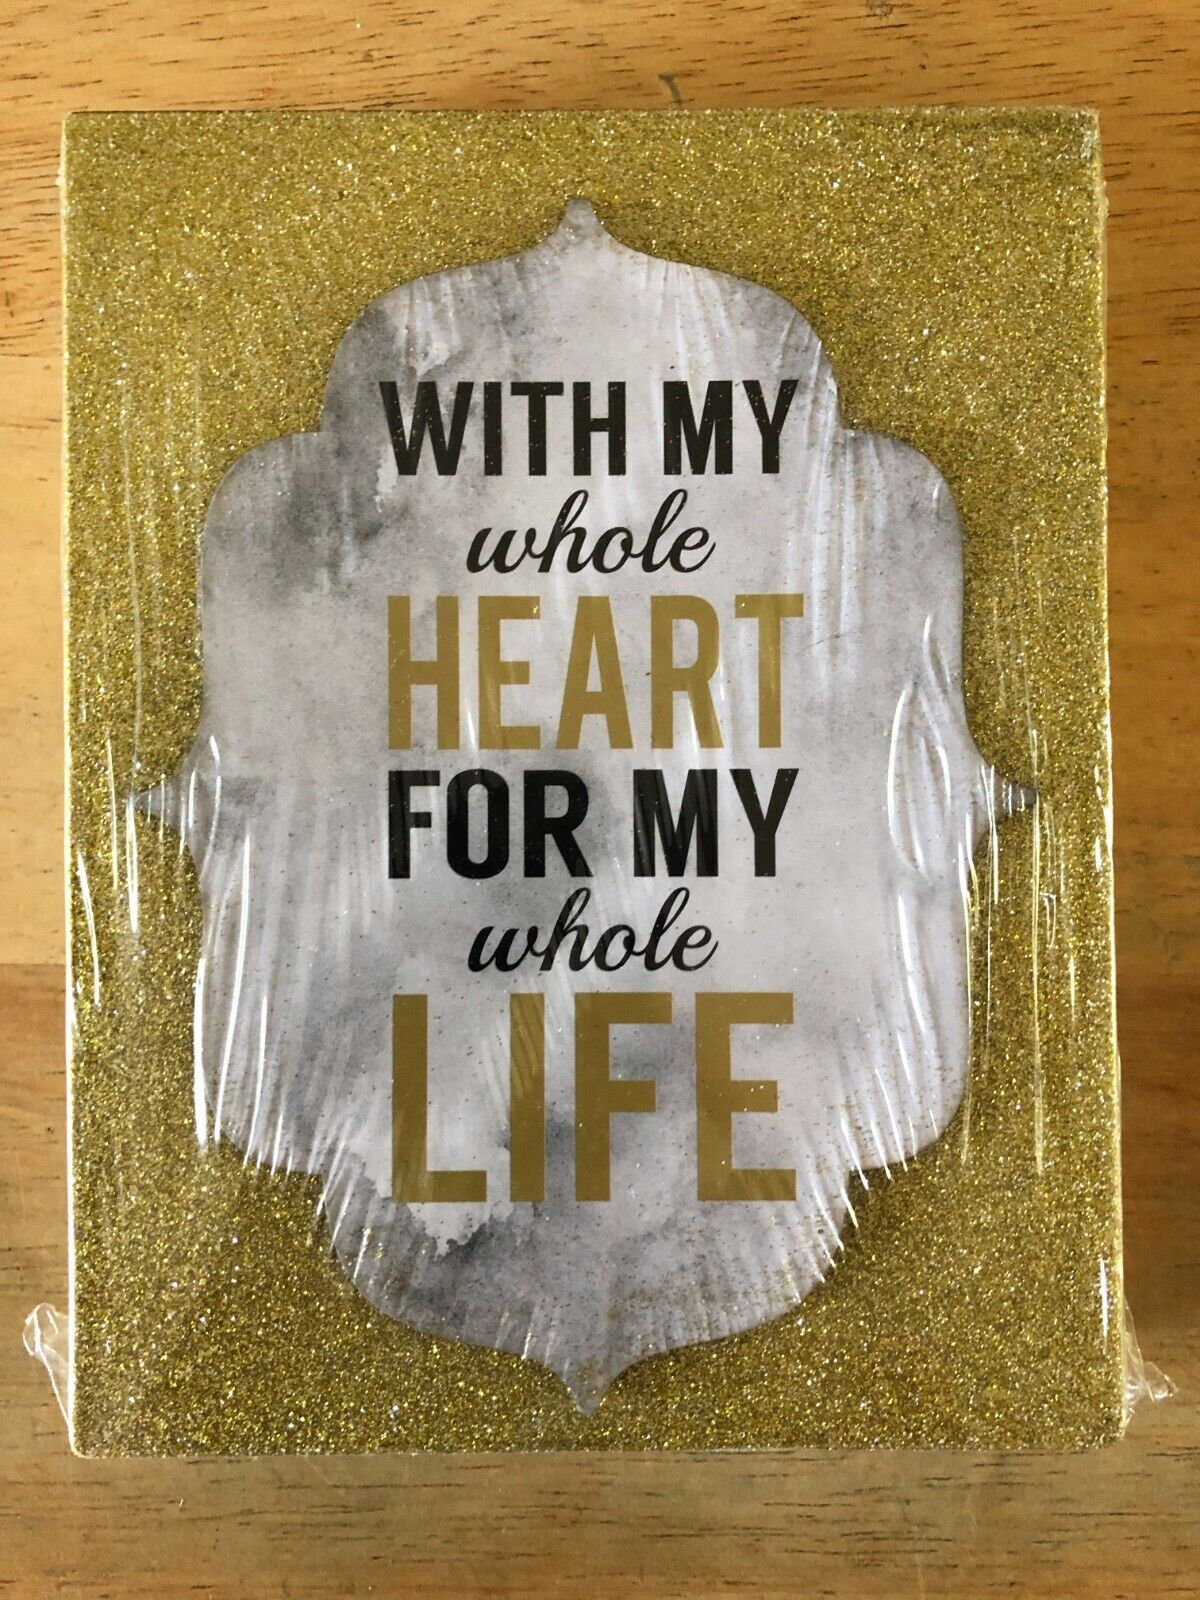 WITH MY WHOLE HEART FOR MY WHOLE LIFE BOX SIGN PLAQUE GOLD BRAND NEW - $9.99